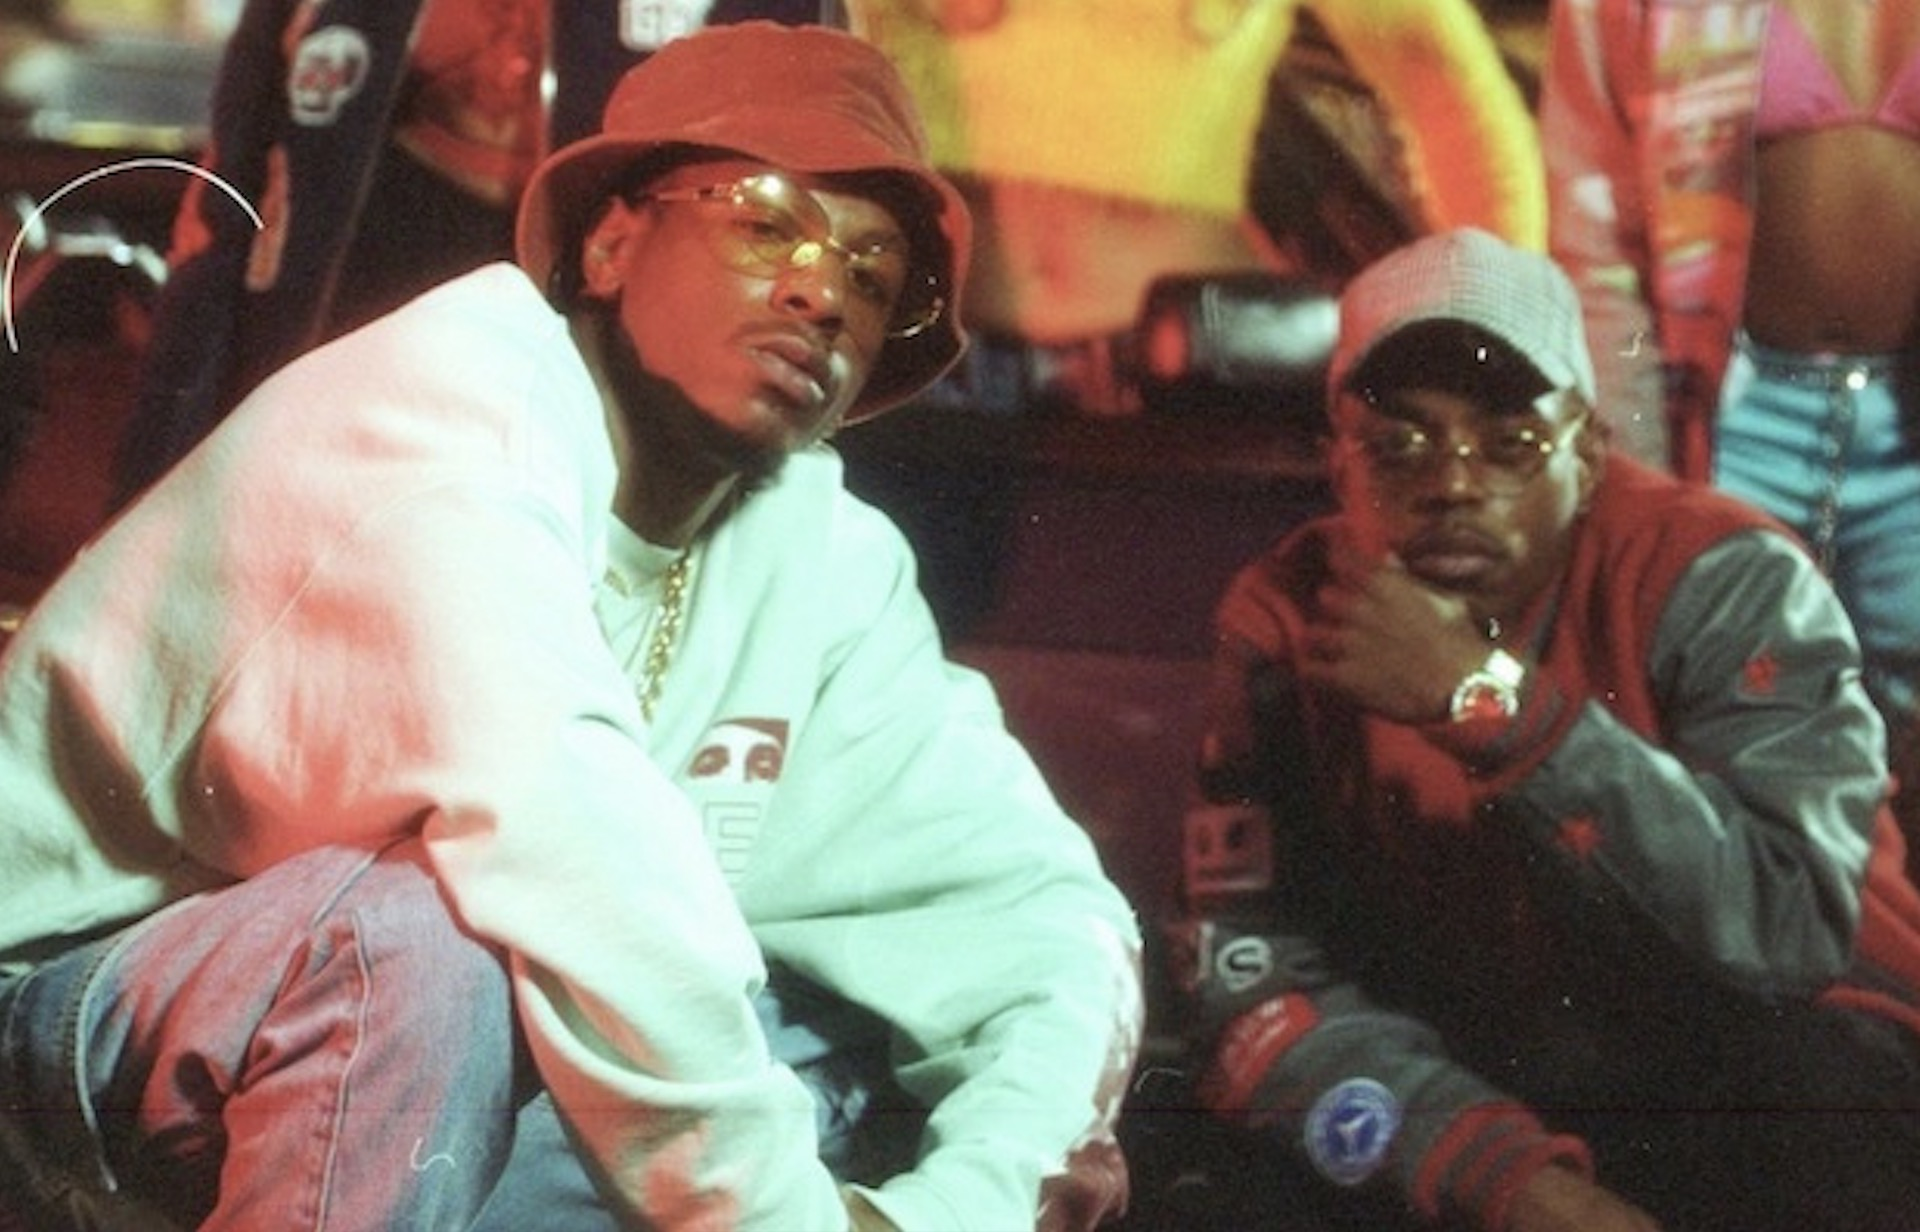 """Westside Boogie Teams Up With Joey Bada$$ in Opulent Visual For """"Outside"""""""